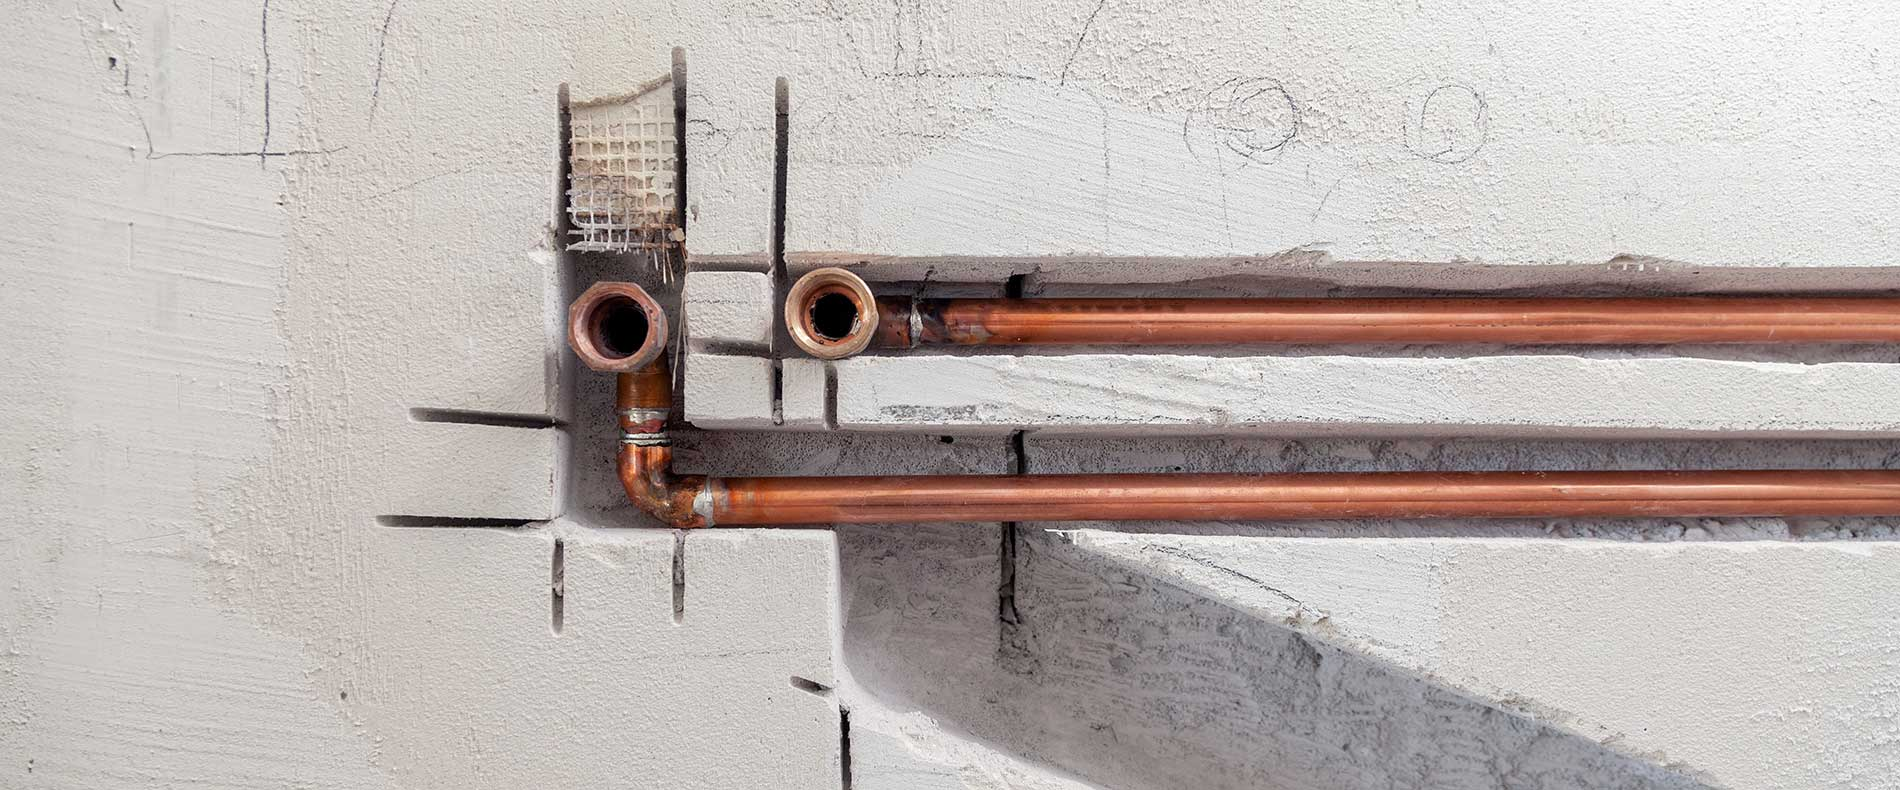 copper-pipes-in-foundation-of-walls